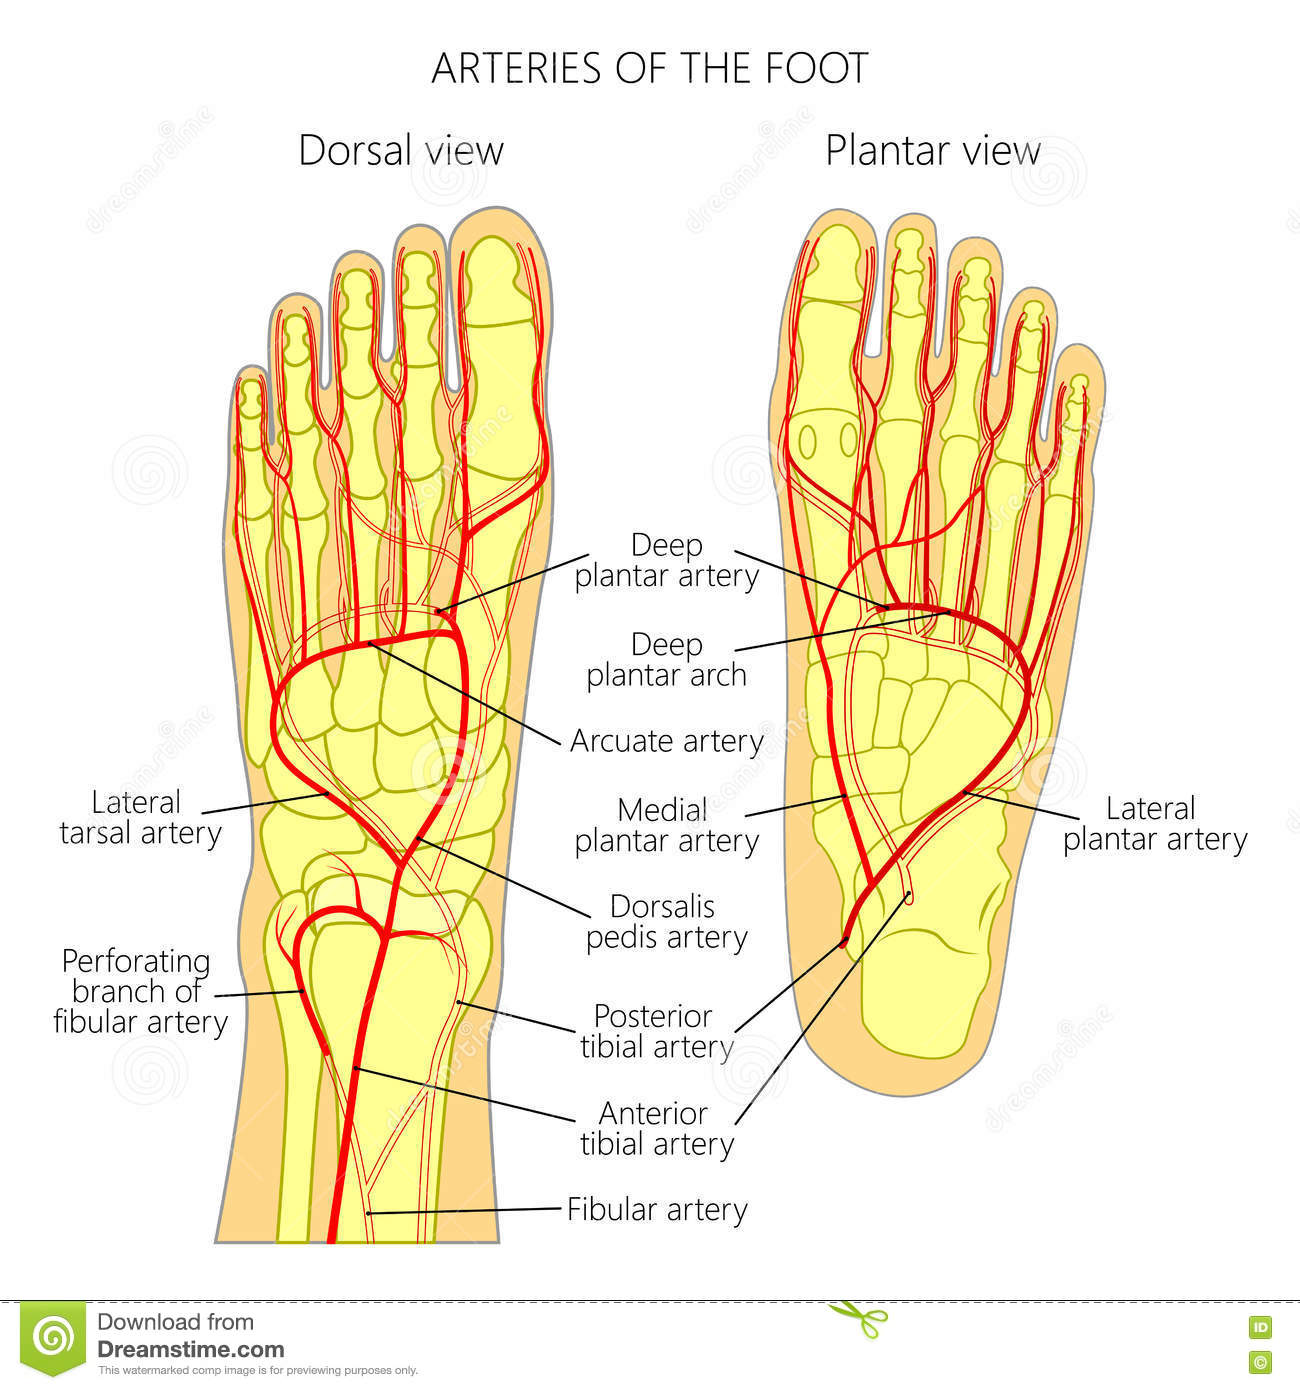 Arteries of the foot stock vector. Illustration of anatomy - 80612262